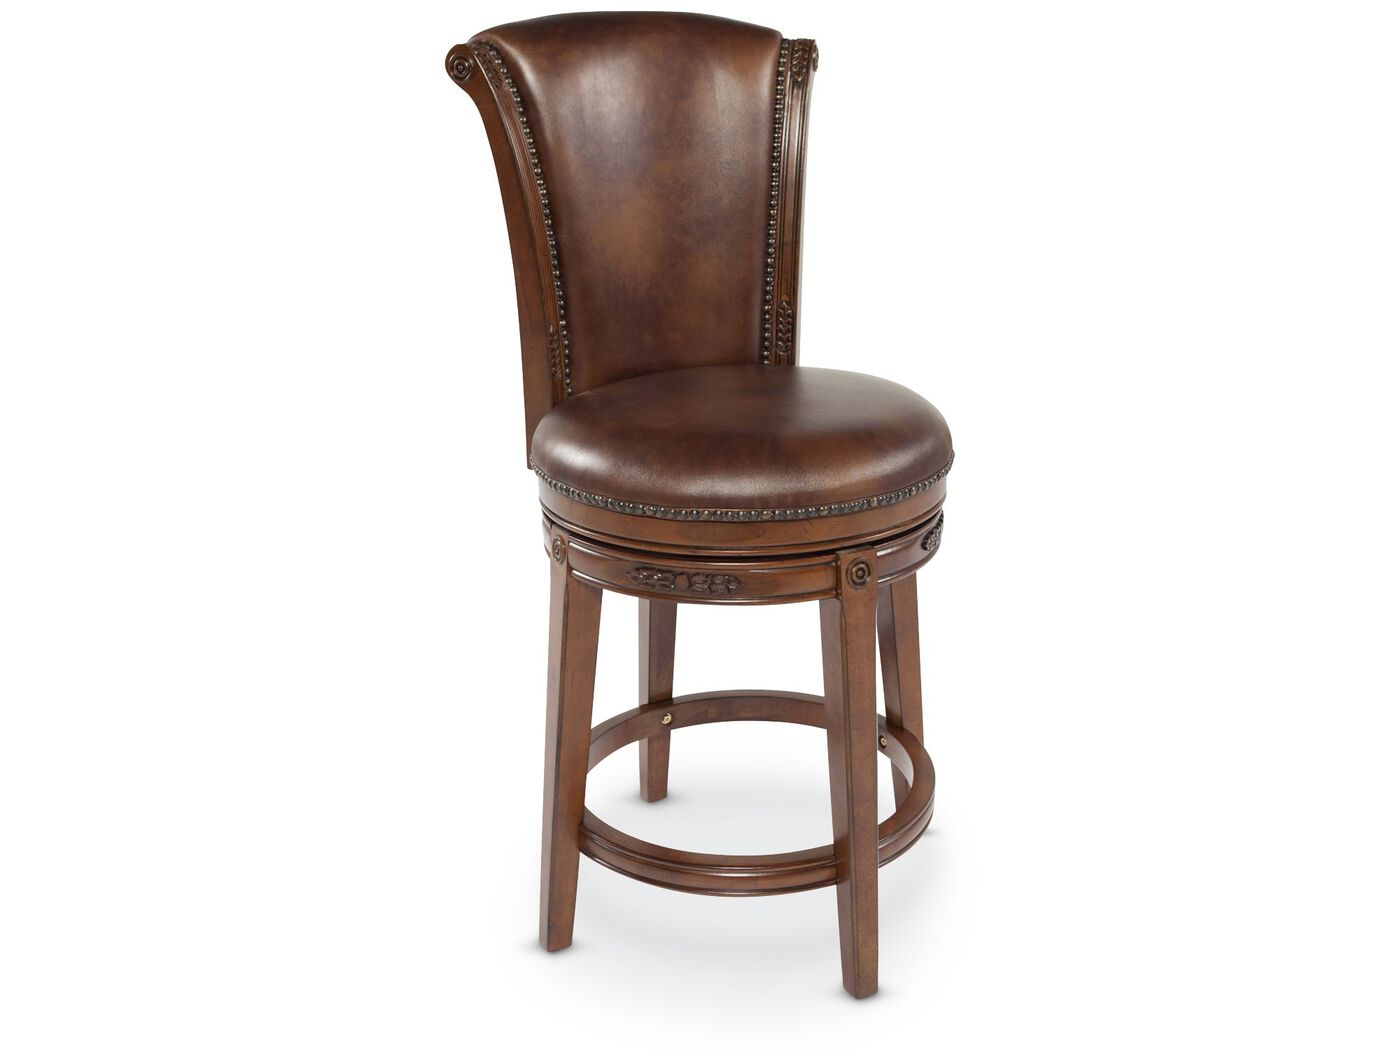 Nailhead Accented Bar Stool in Brown Mathis Brothers  : HILLS 4553047826 1 from www.mathisbrothers.com size 1333 x 1000 jpeg 56kB